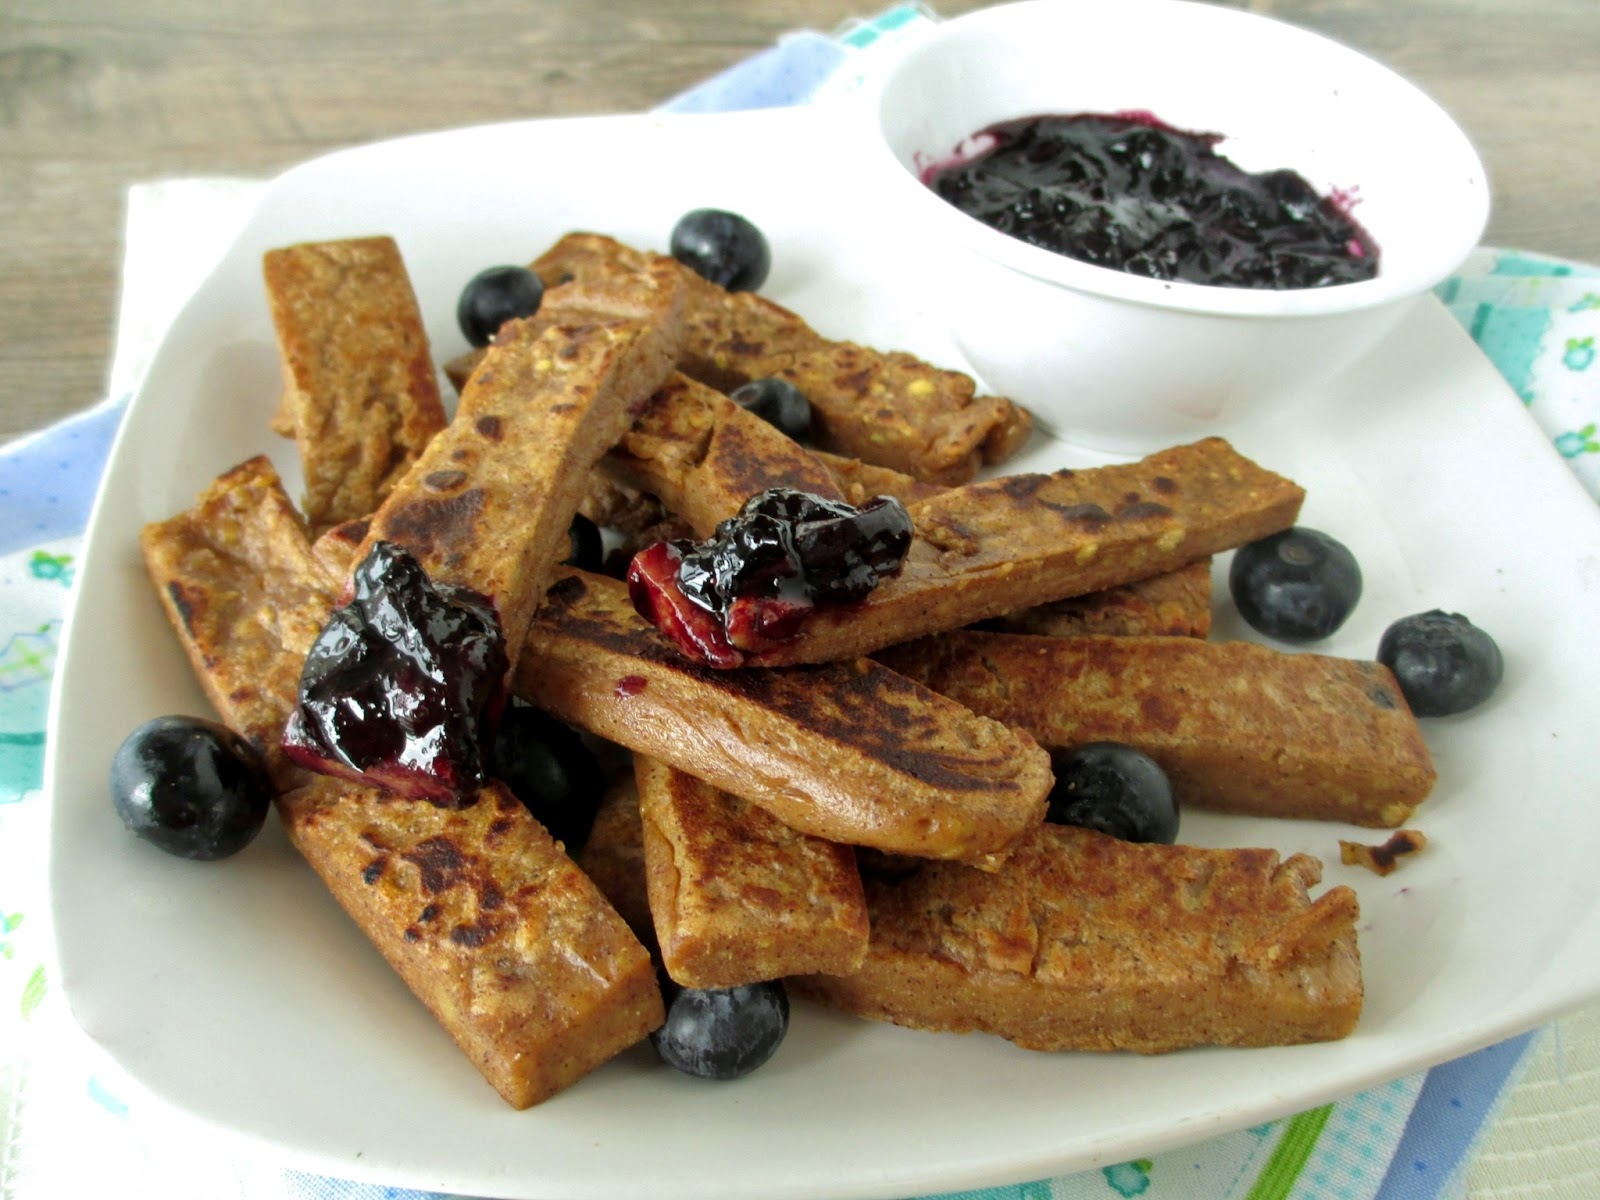 Vanilla & Spice: Breakfast Chickpea Fries with Blueberry Sauce